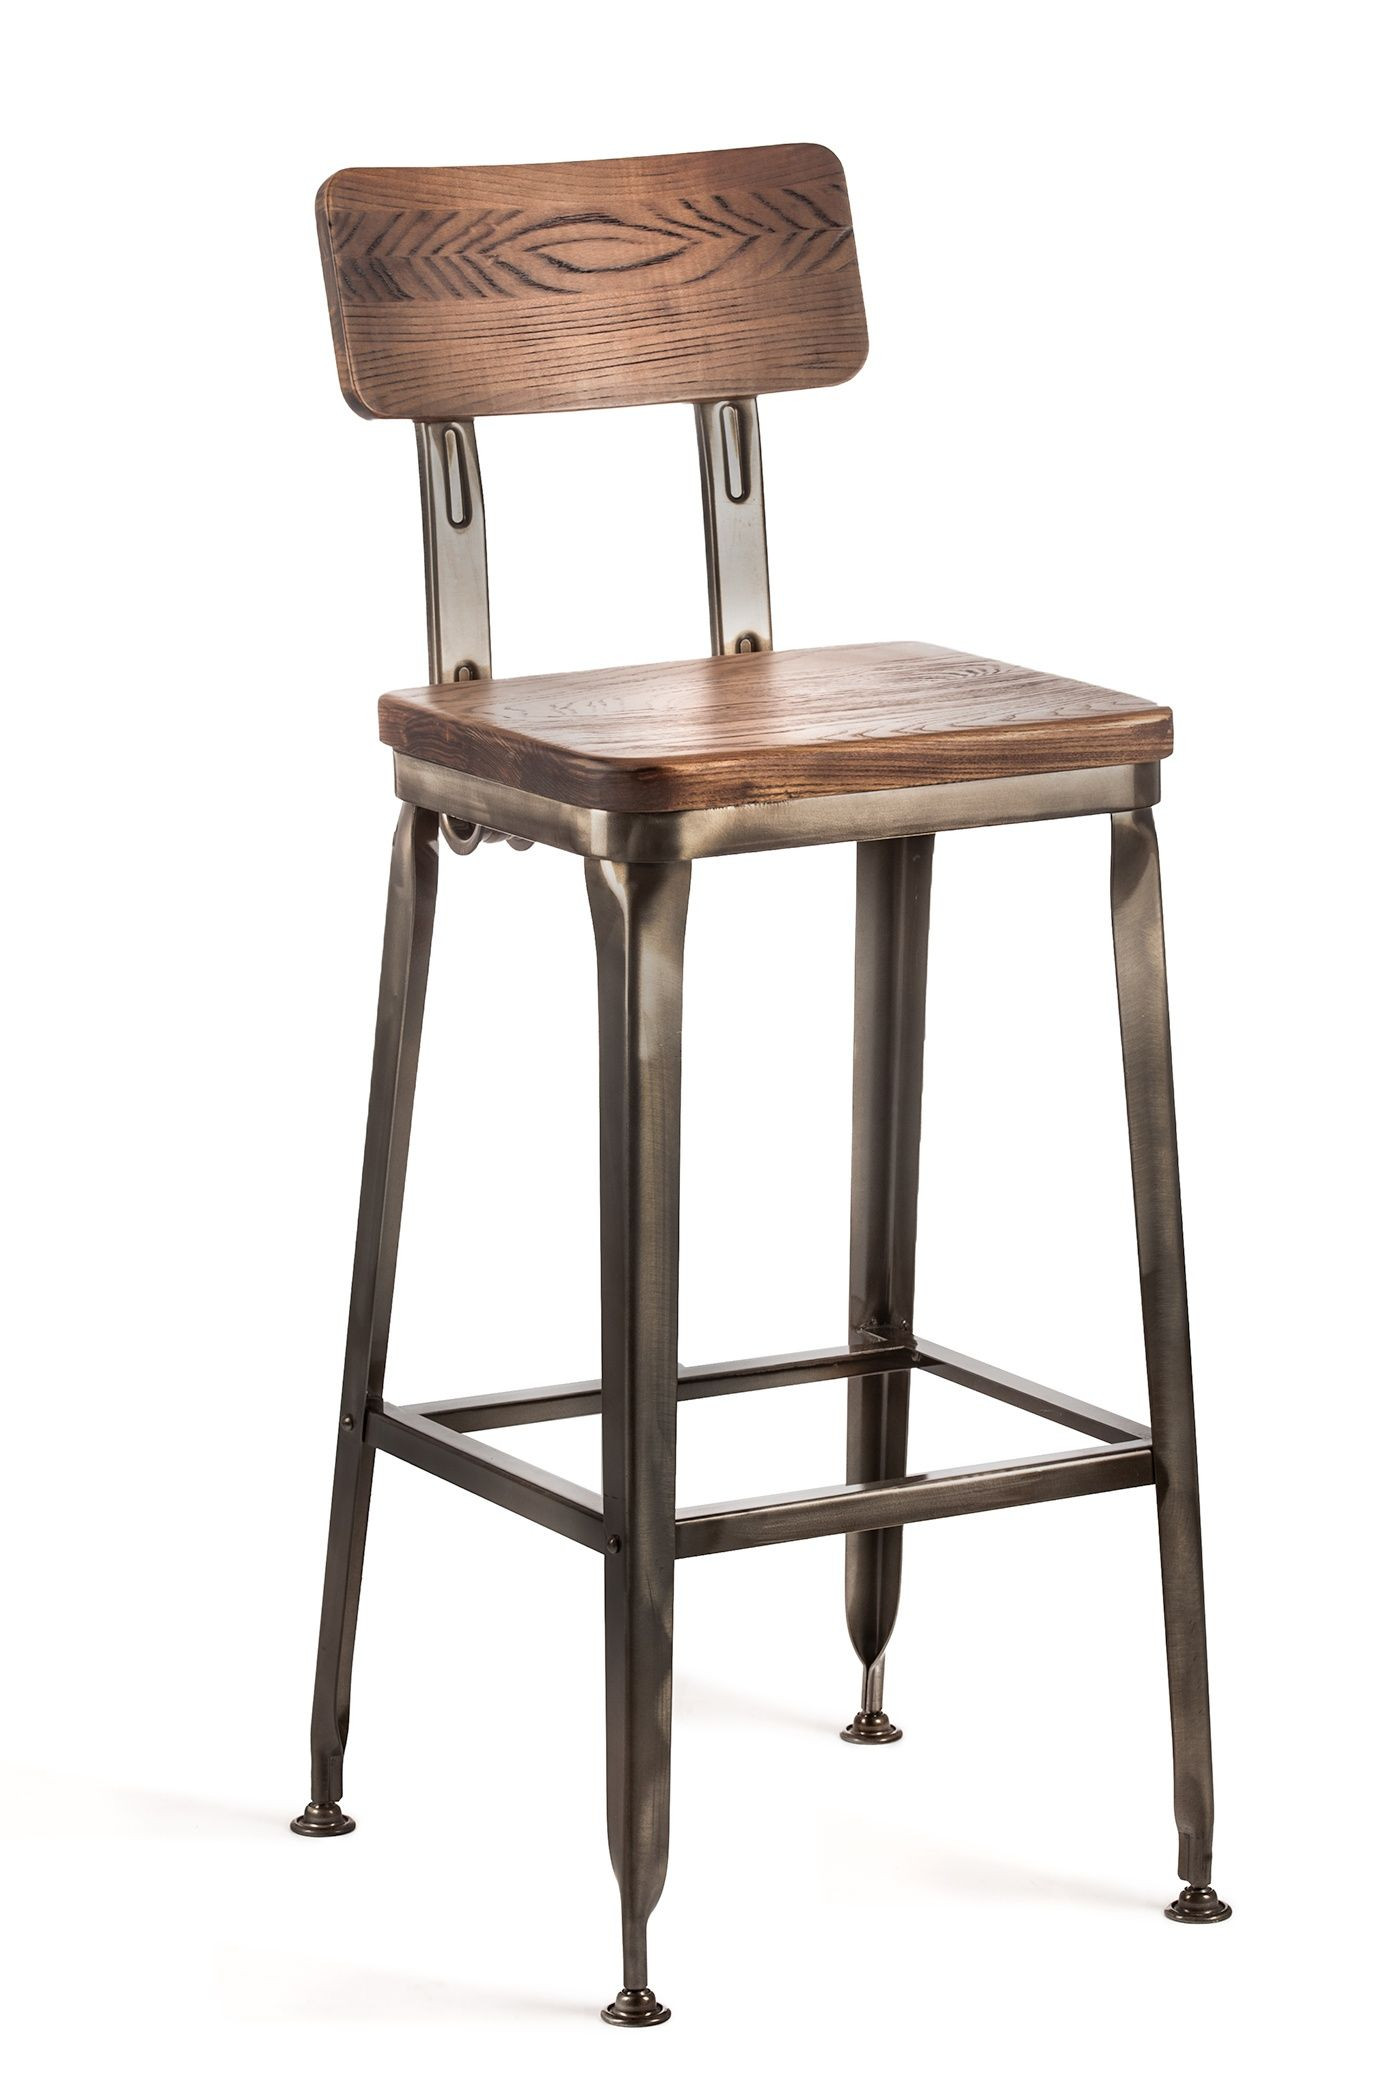 Octane Bar Stool with a Wood Seat Gunmetal with Wood Seat / Industry West  sc 1 st  Pinterest & Octane Bar Stool with a Wood Seat Gunmetal with Wood Seat ... islam-shia.org